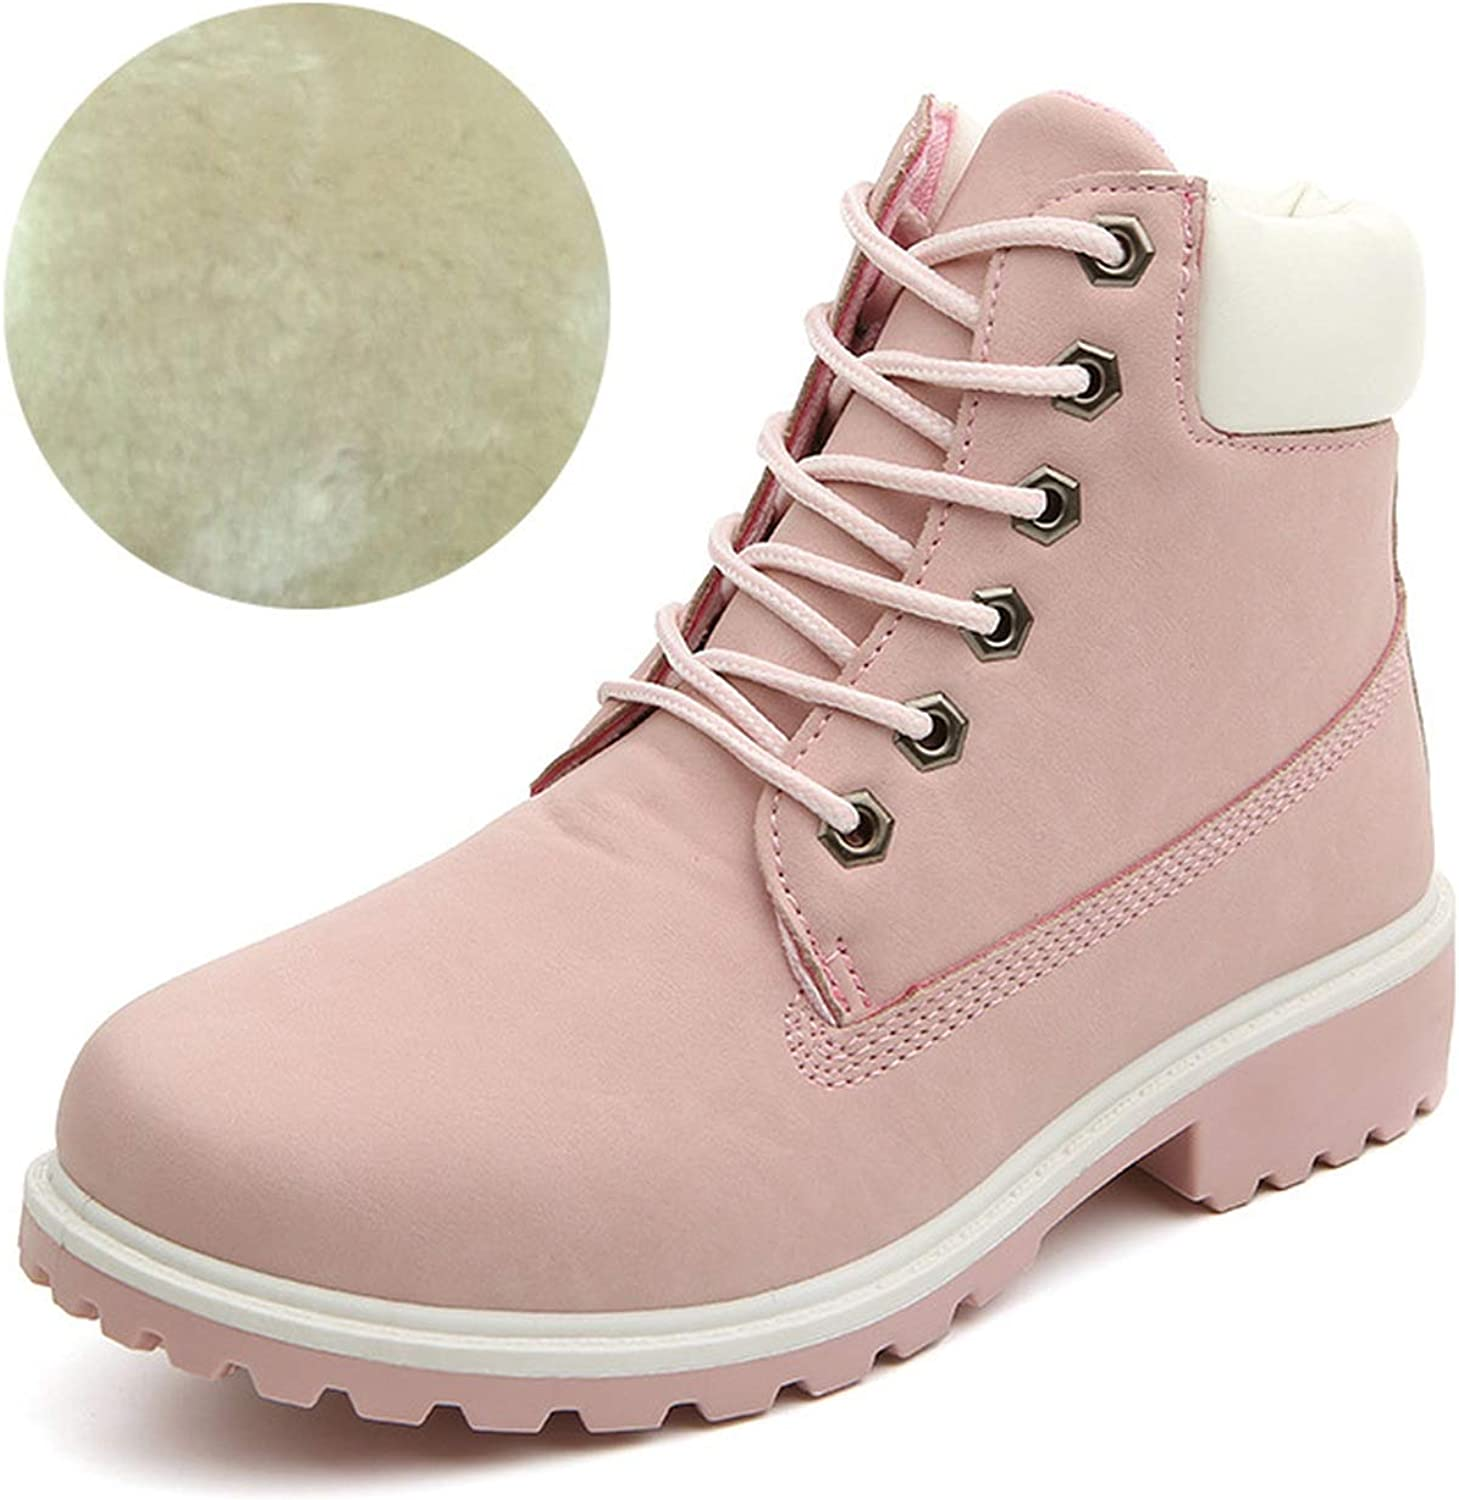 Pretty-sexy-toys Autumn Plush Snow Boots Women Wedges Knee-High Slip-Resistant Boots Thermal Female Cotton-Padded shoes Warm Size Pink with Fur,6.5